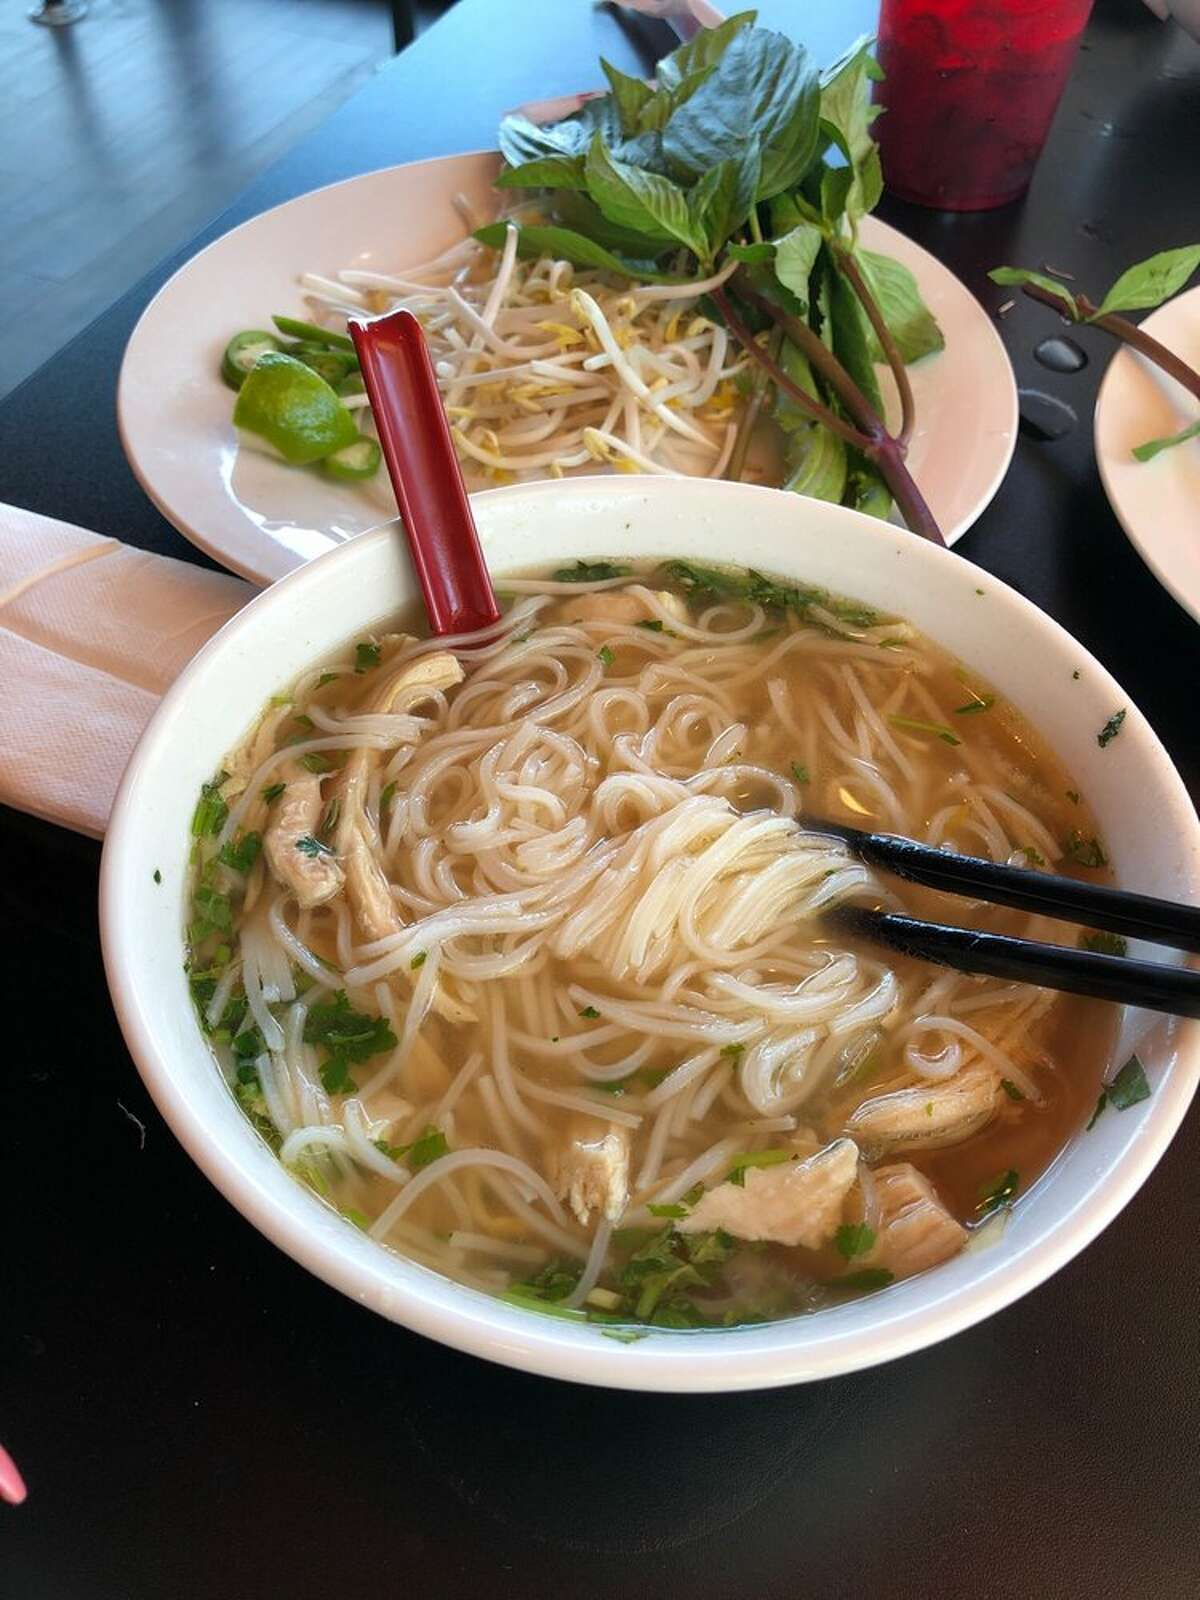 >>>Check out the best pho spots in the Houston area, according to Yelp. All of the quoted reviews below are also from Yelp.com. Photo courtesy Kristen D/Yelp